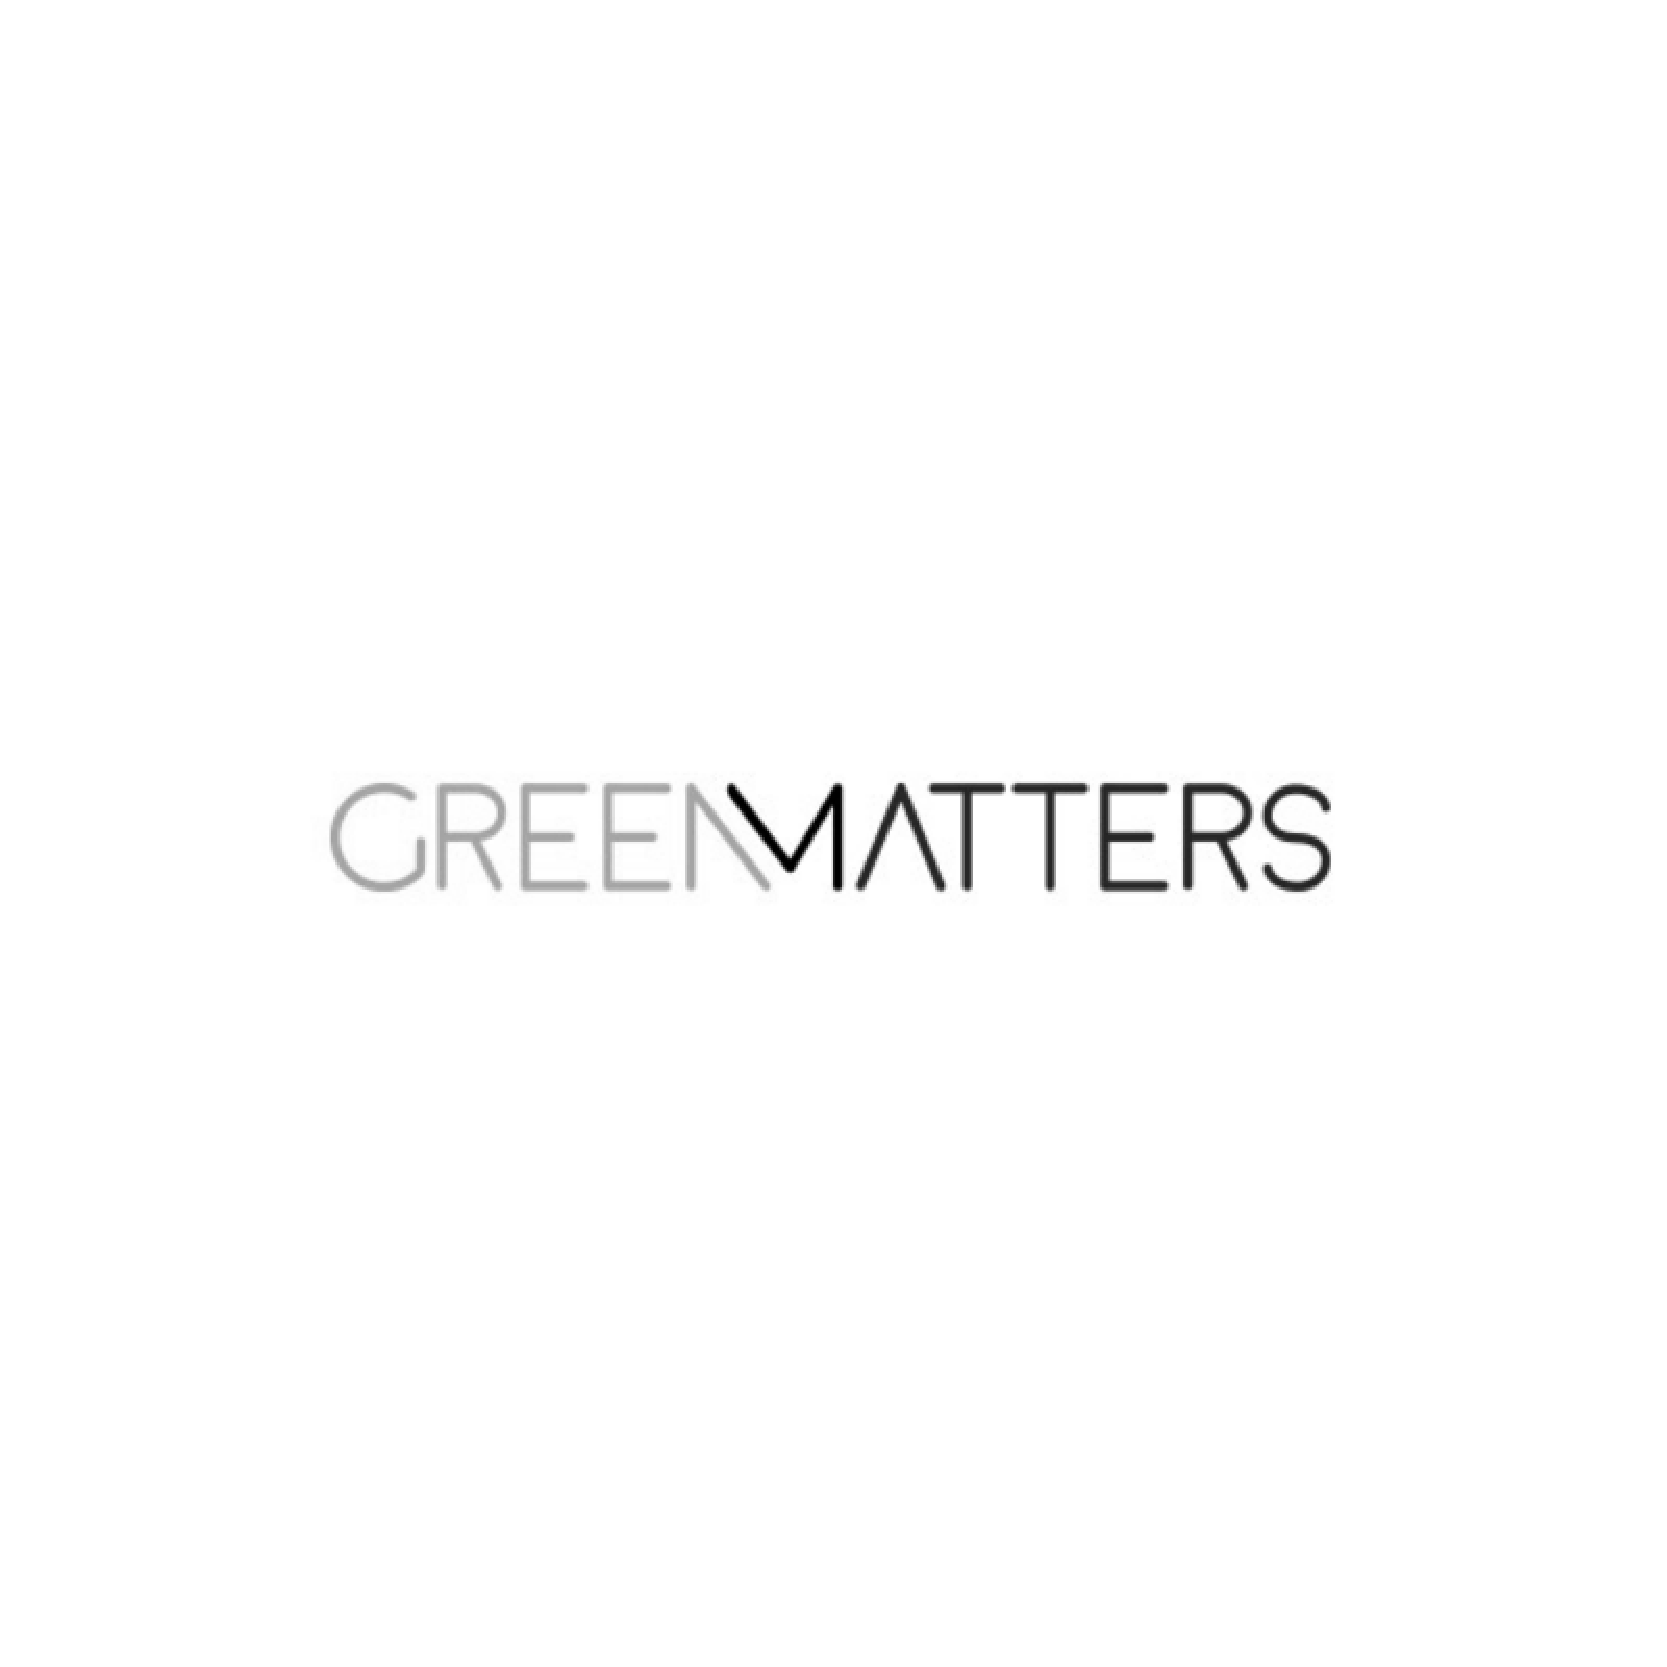 Green Matters v2.png